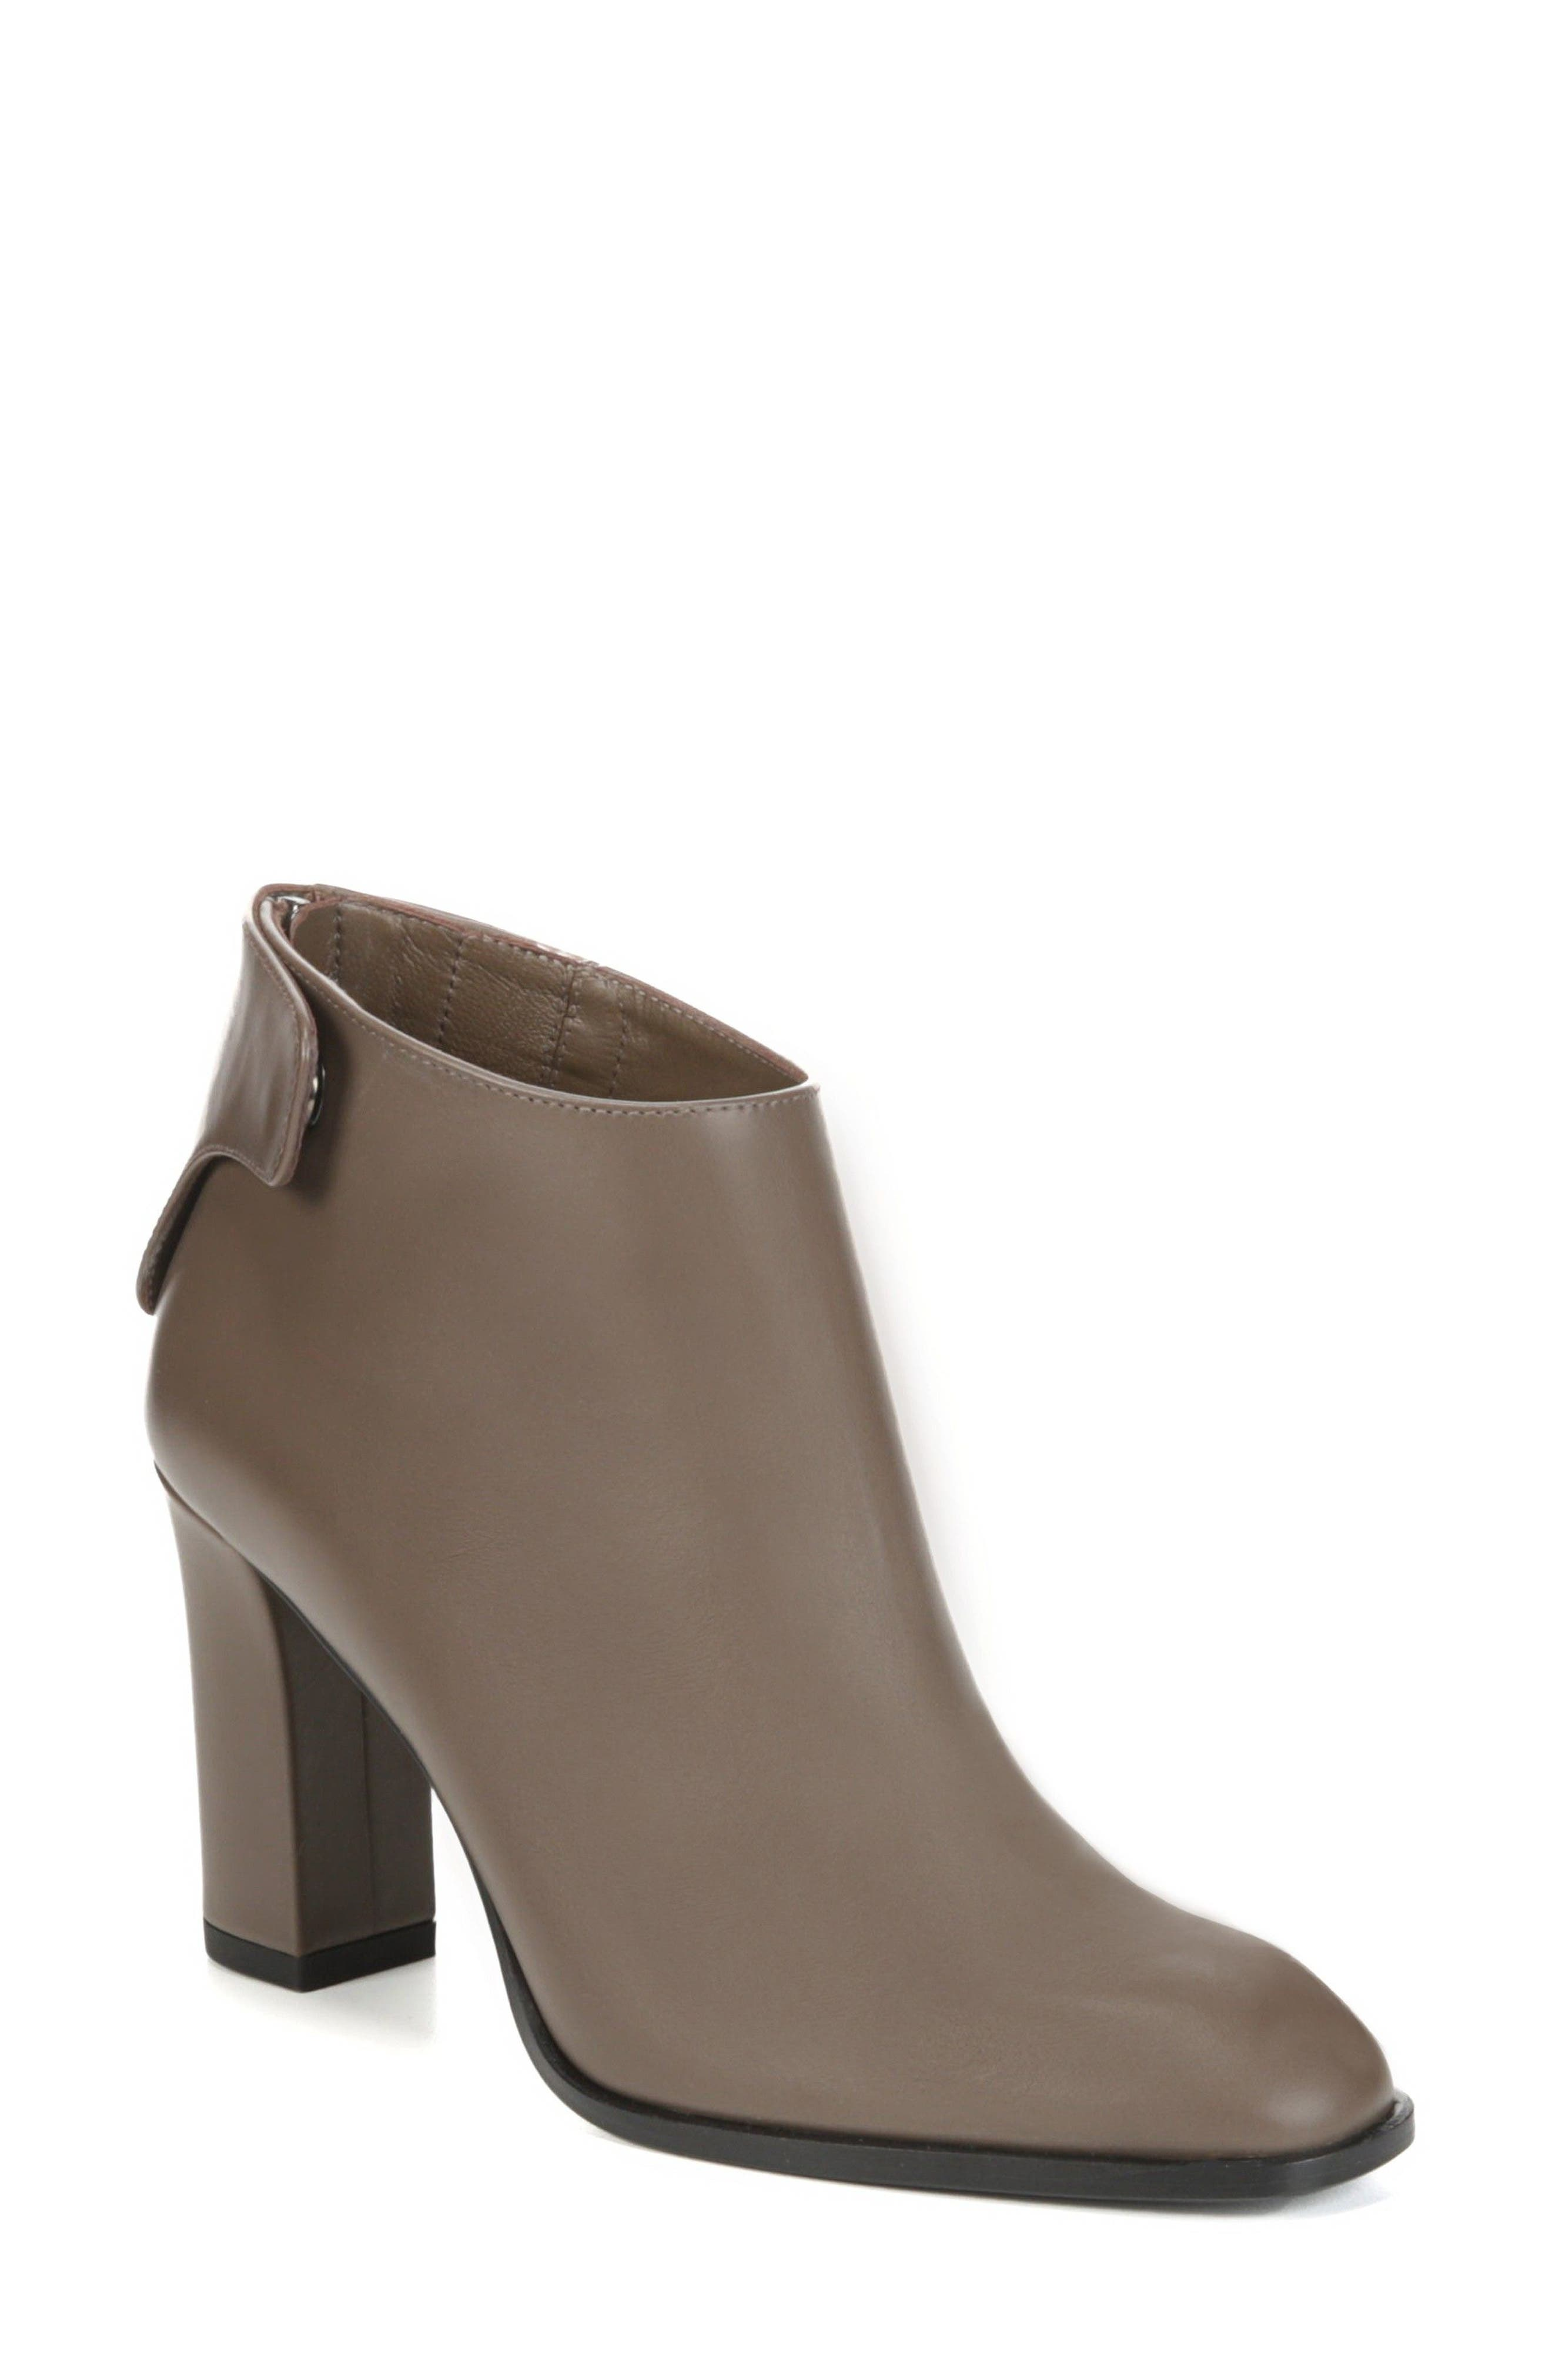 Aston Ankle Boot,                             Main thumbnail 1, color,                             Bark Leather